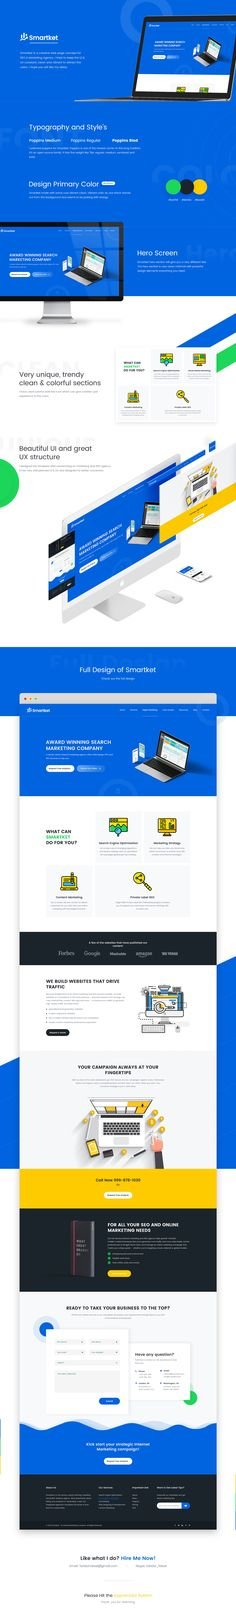 Smartket is a creative web page concept for SEO & Marketing Agency. I tried to keep the UI & UX constant, clean and vibrant to attract the users. I hope you will like my ideas. http://www.shareasale.com/r.cfm?B=791843&U=1611319&M=37723&urllink=